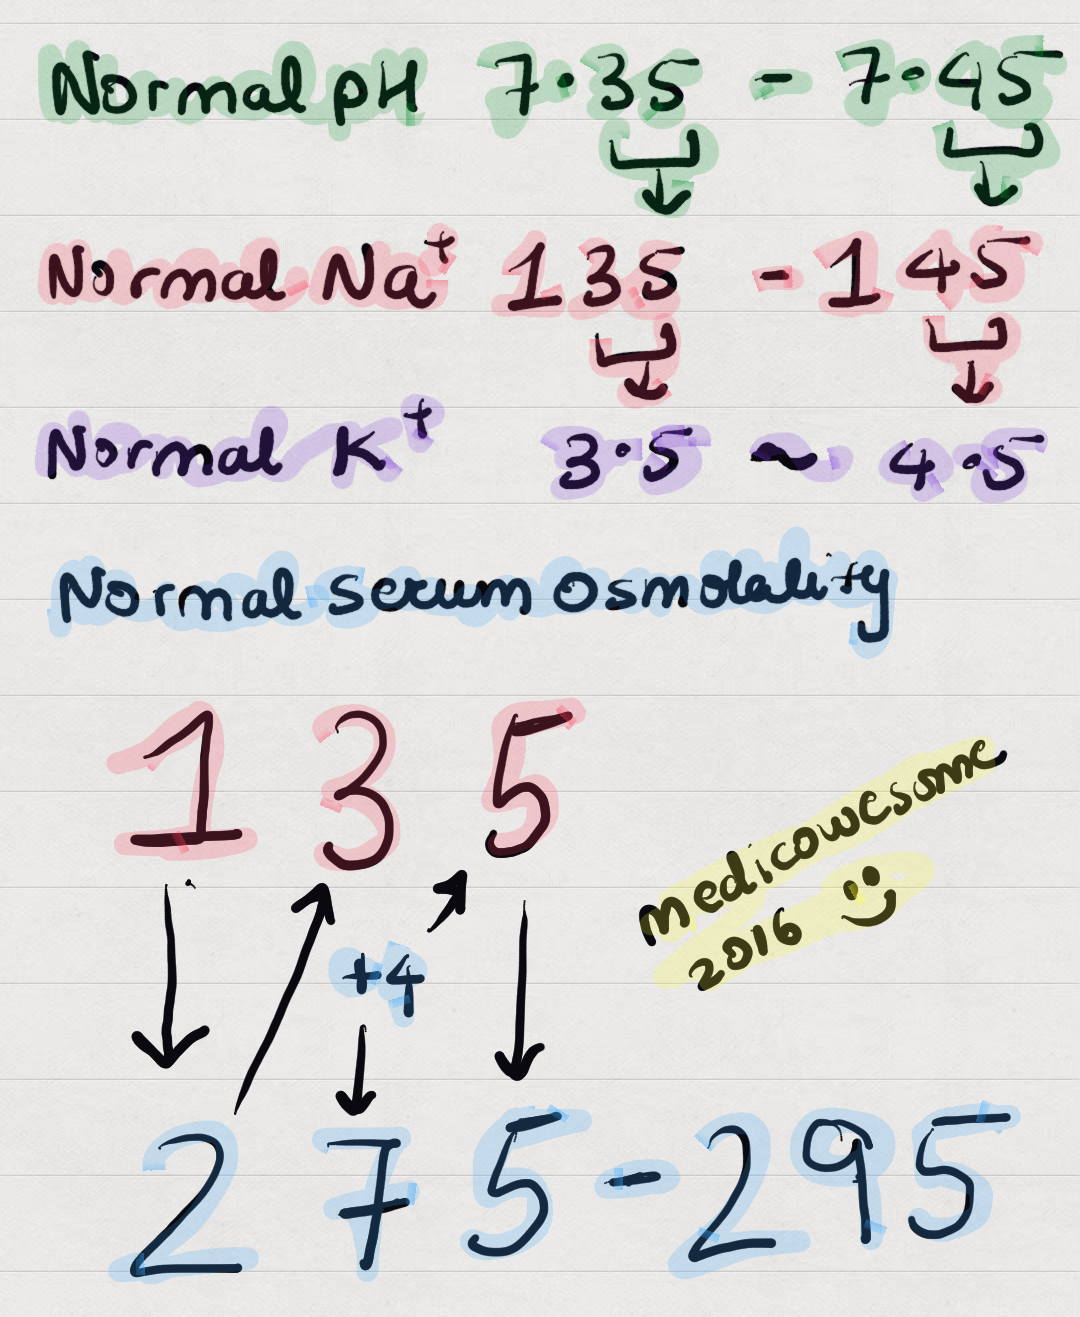 medicowesome: normal sodium, potassium and serum osmolality values, Skeleton